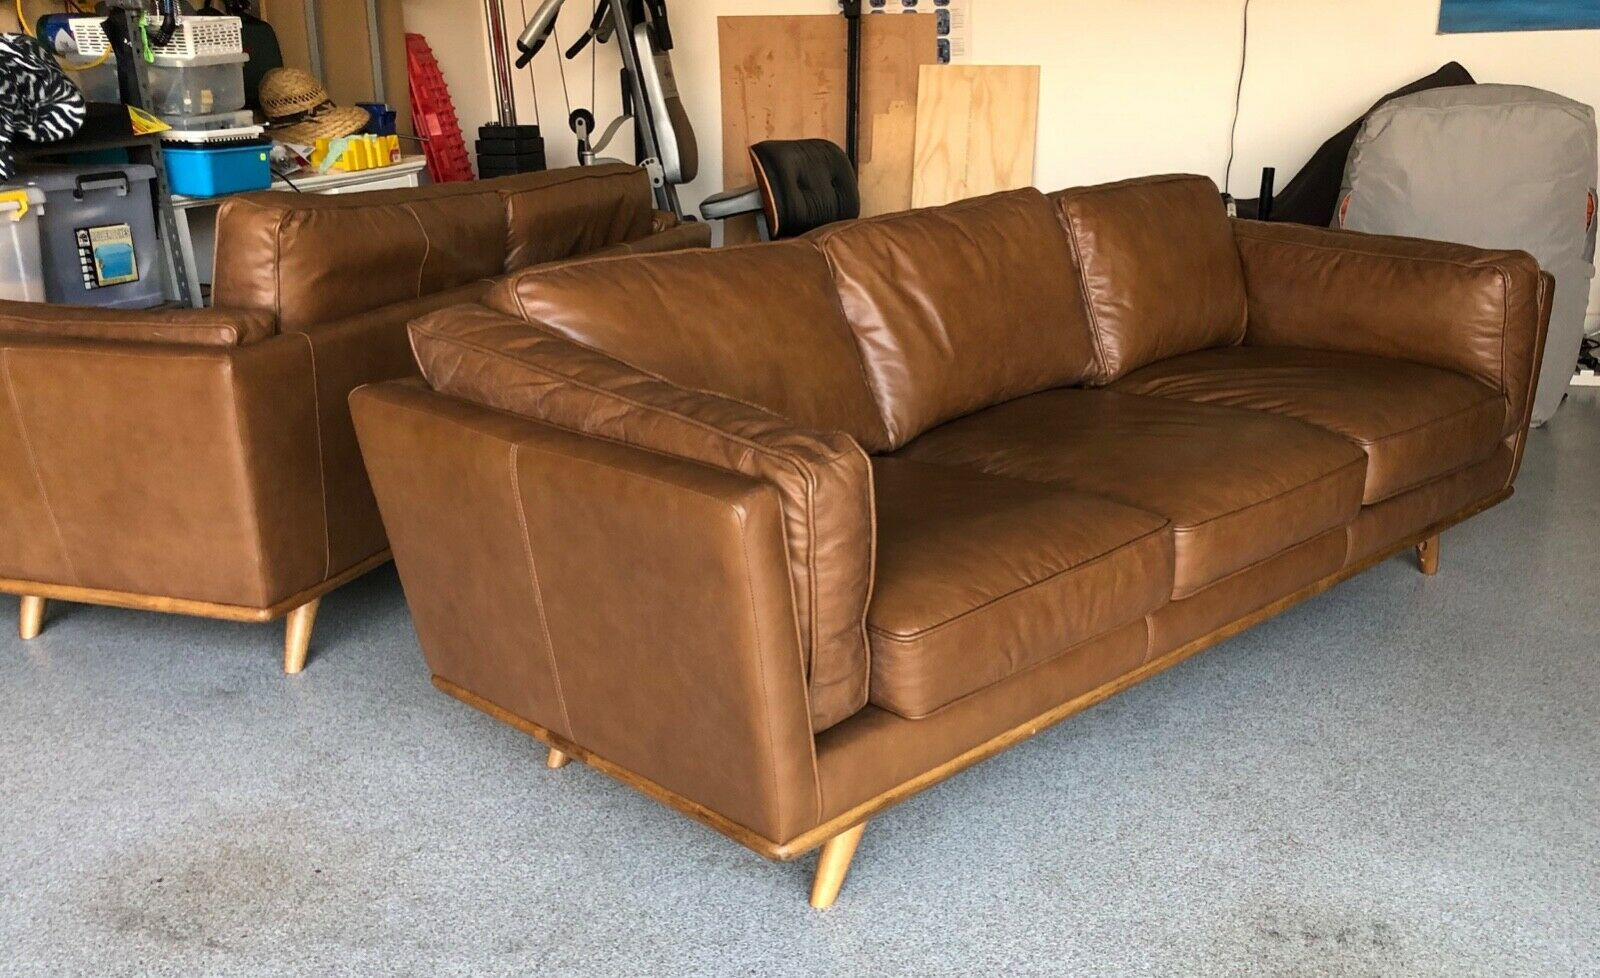 Freedom Furniture Dahlia 3 2 Seat Leather Lounges Ex Display Home Used Ebay Freedom Furniture Leather Lounge Living Room Leather